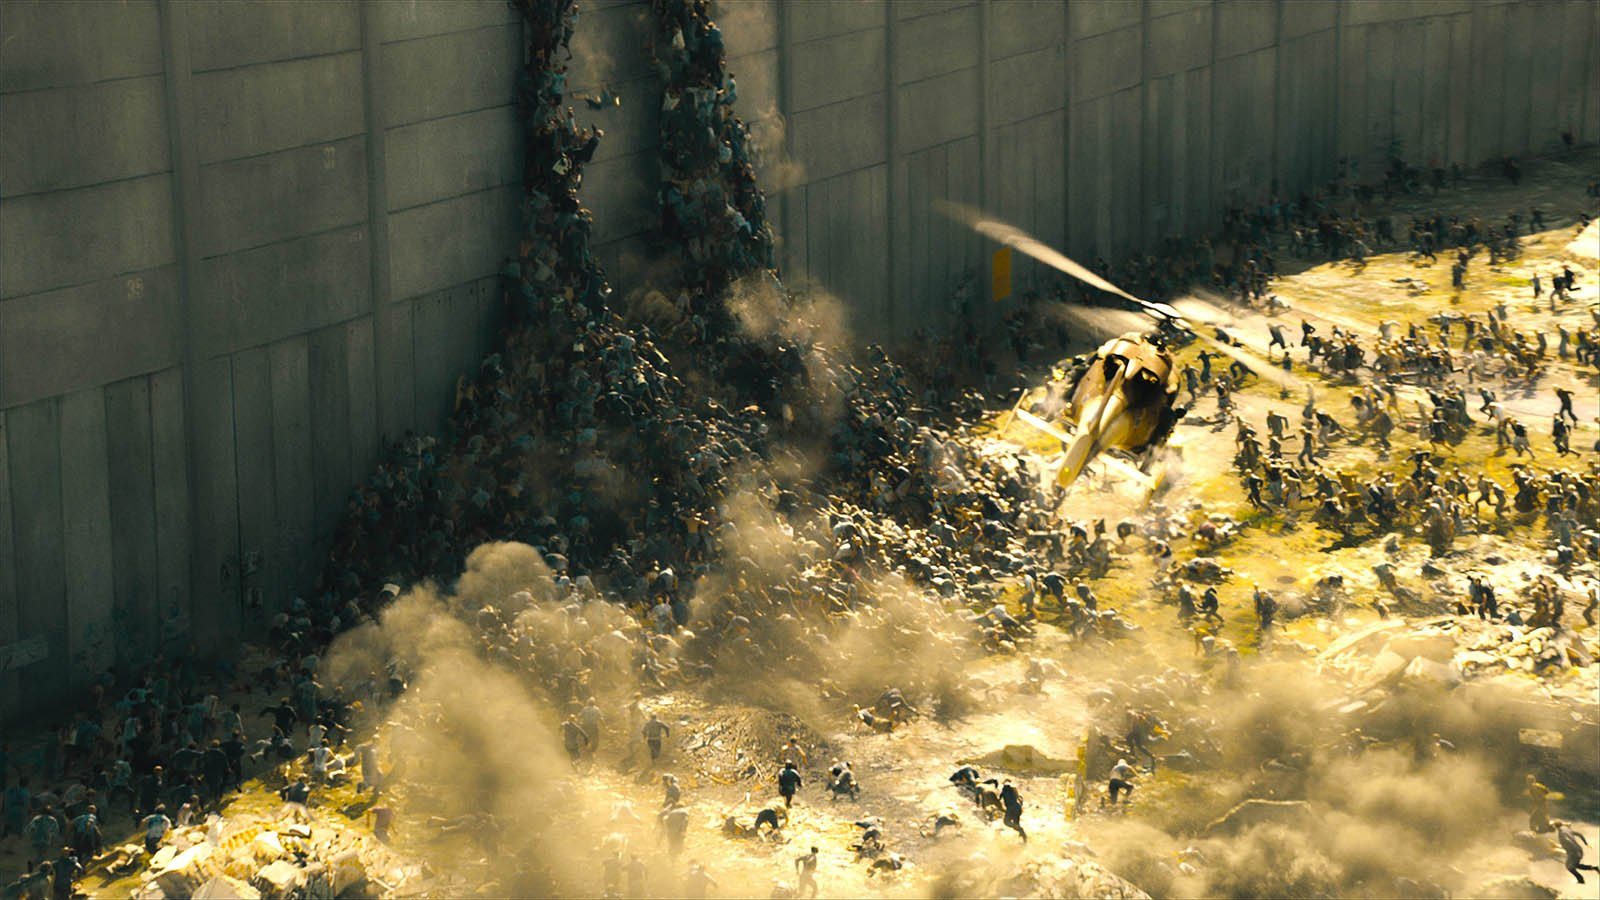 world war z movie review south africa